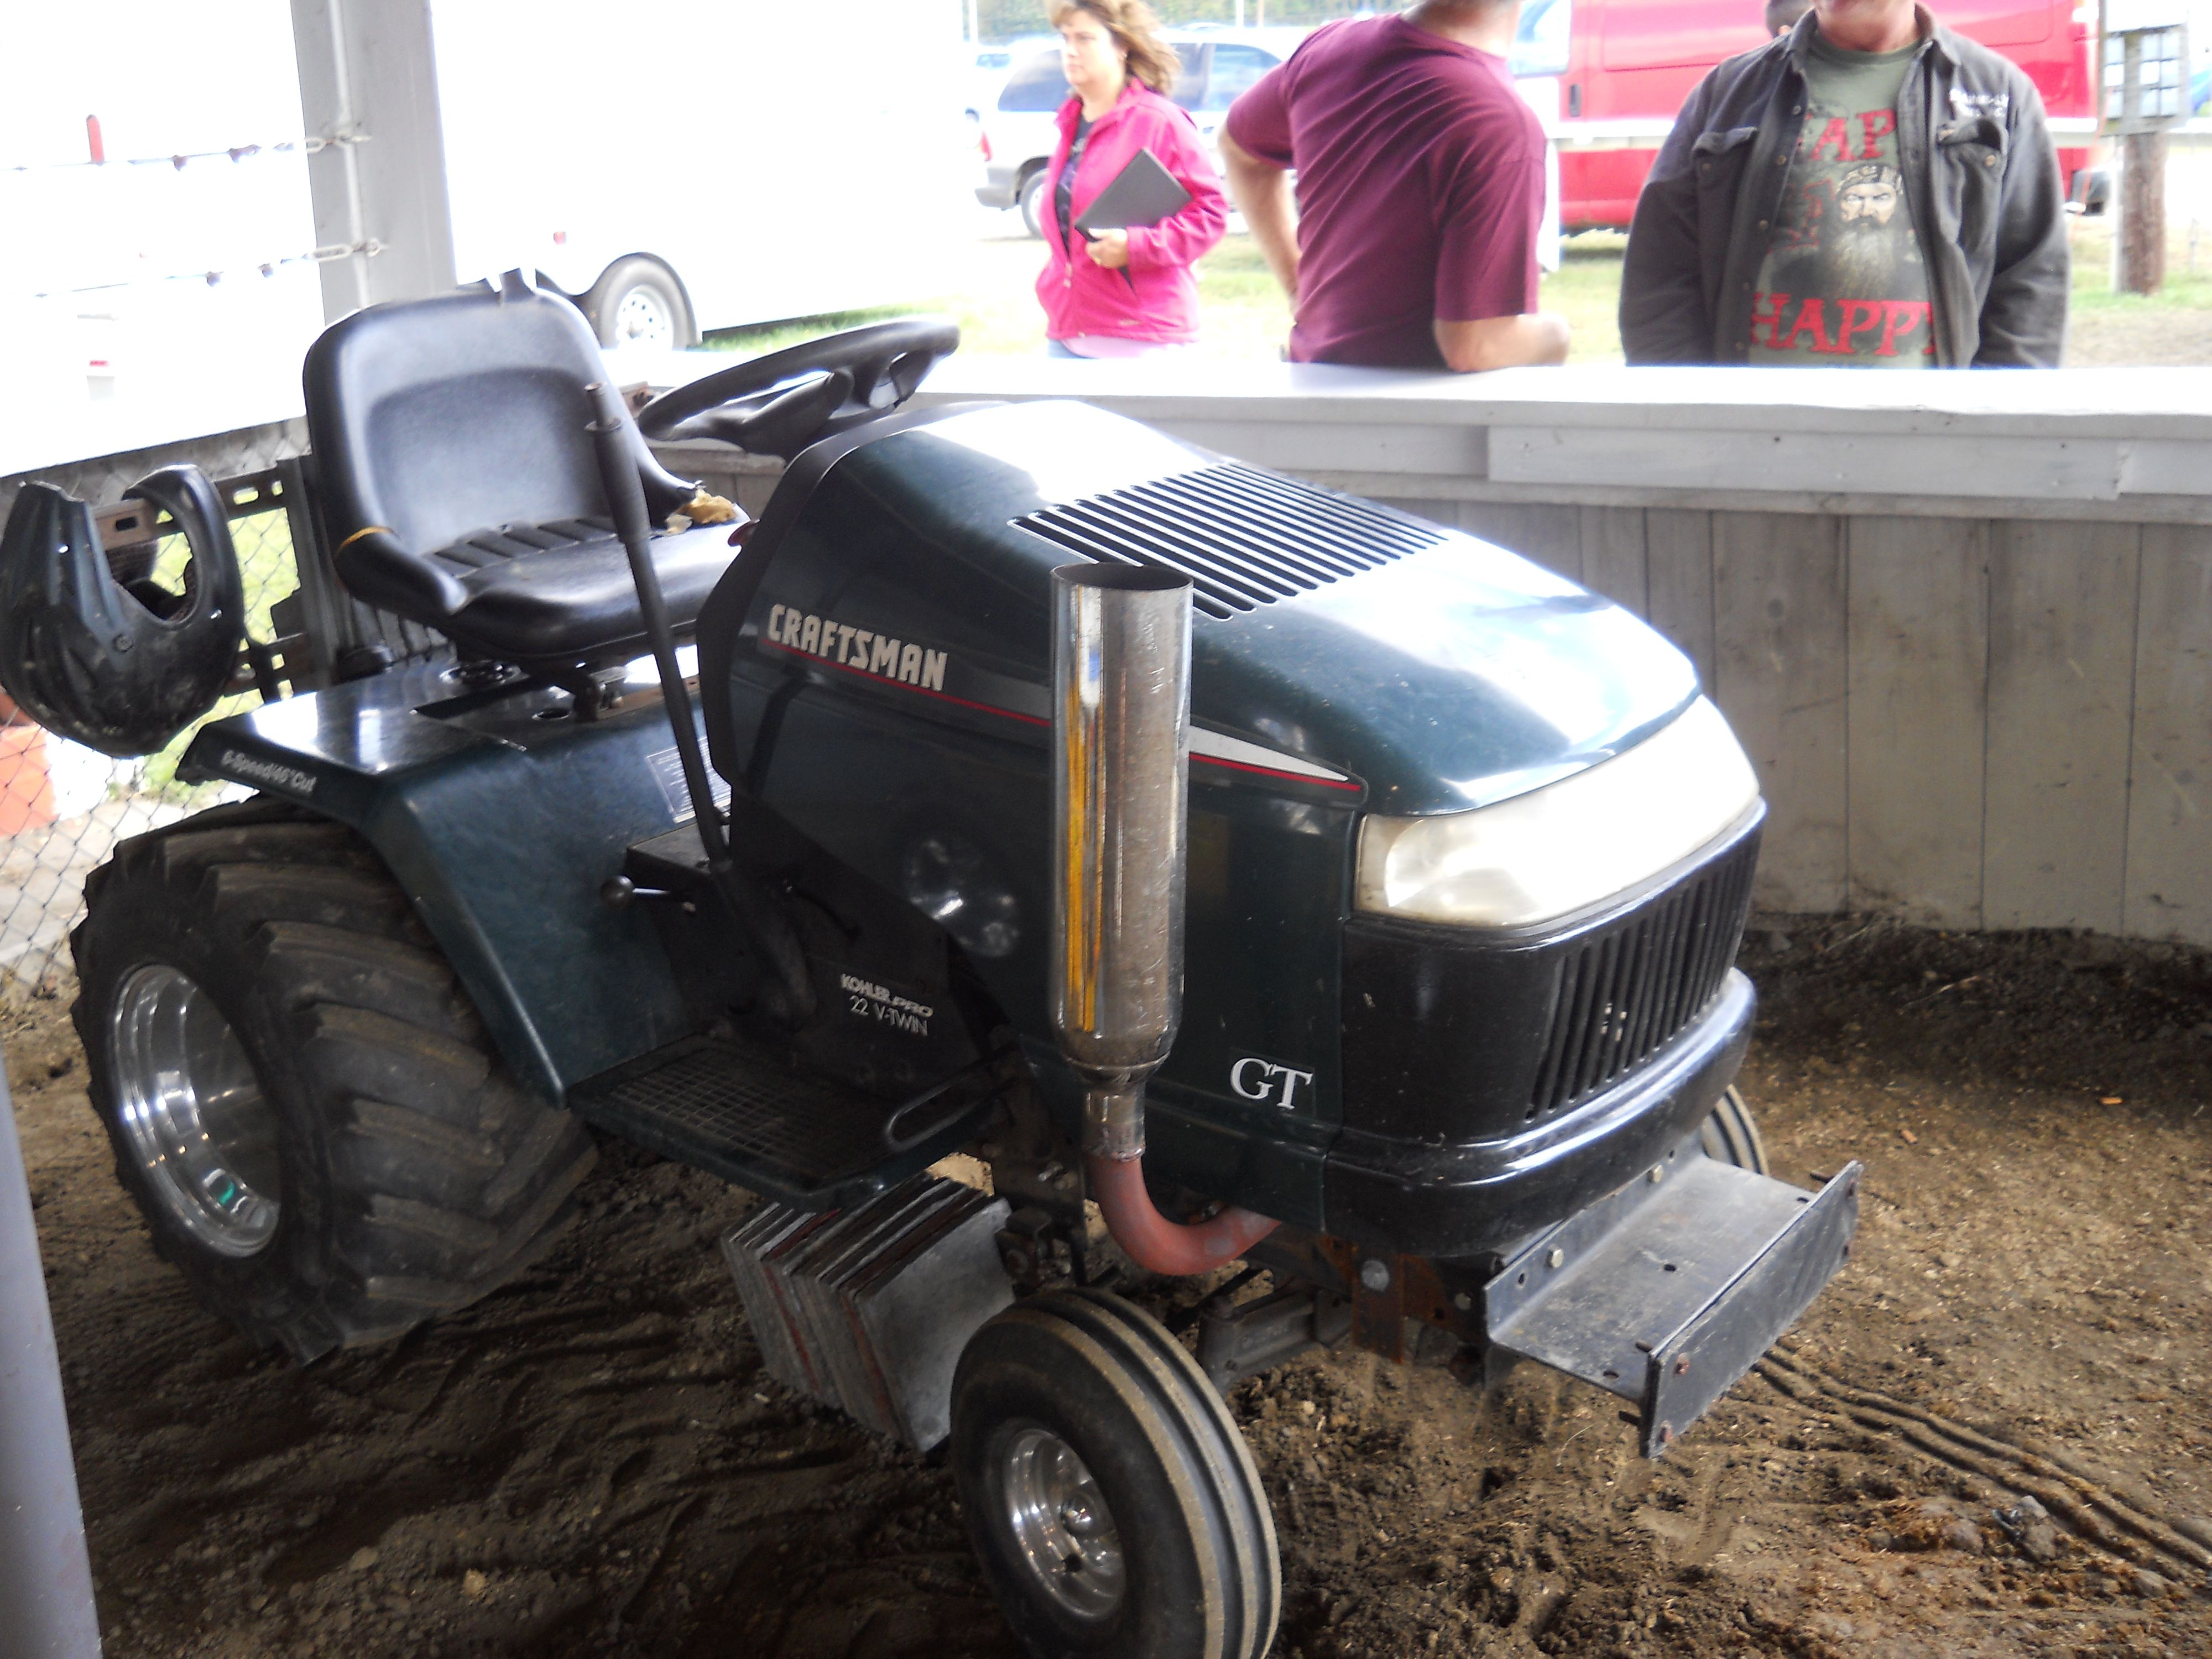 Craftman Gt In Lawn Mower Pull Contest Https Www Youtube Com User Viewwithme Lawn Mower Lawn Tractor Lawn Mower Racing